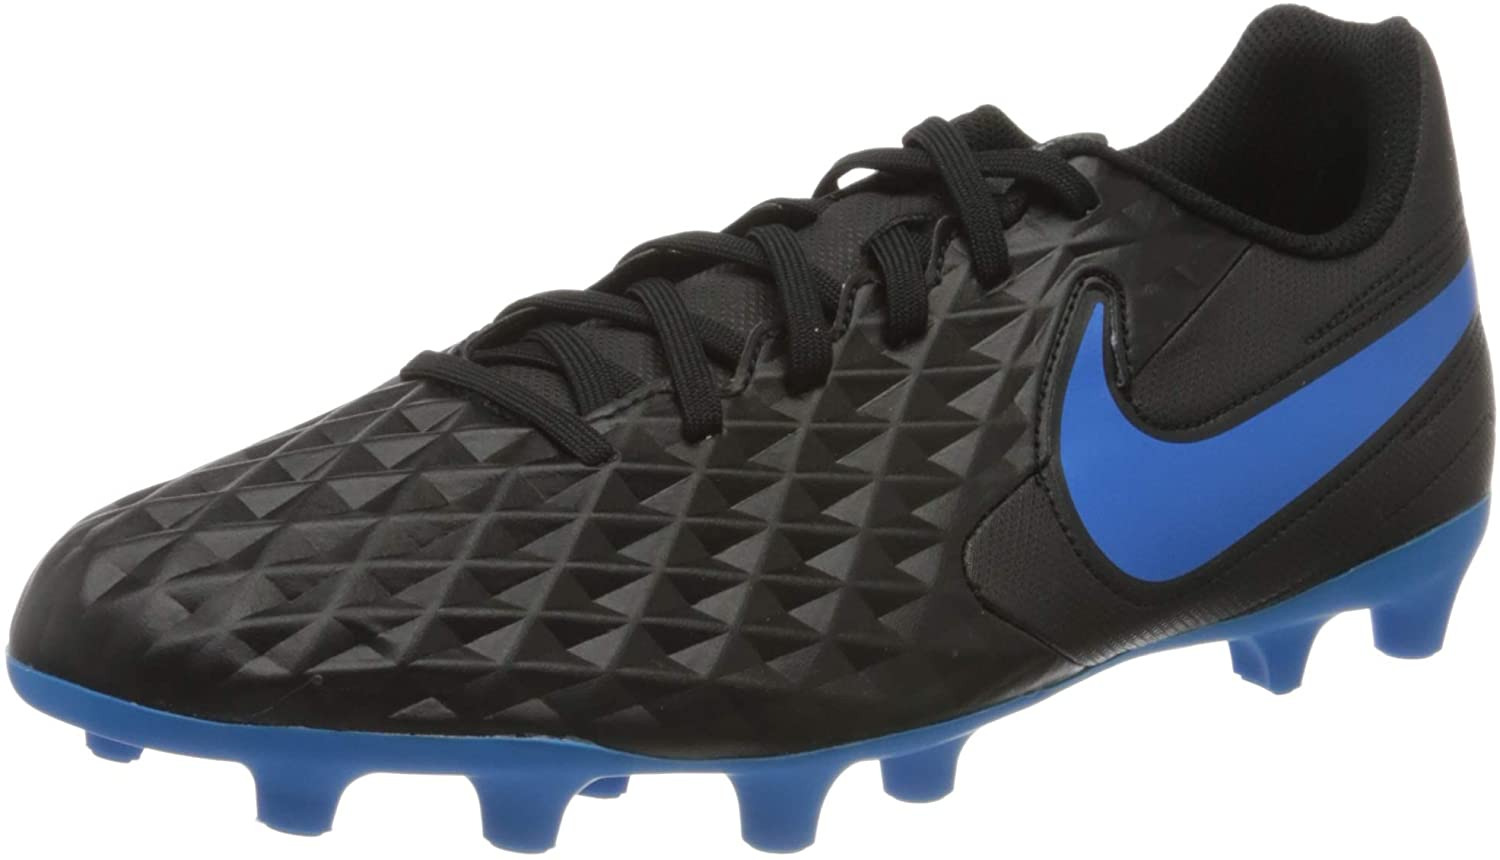 Nike Legend 8 Club Fg/Mg Mens Football Boots At6107 Soccer Cleats